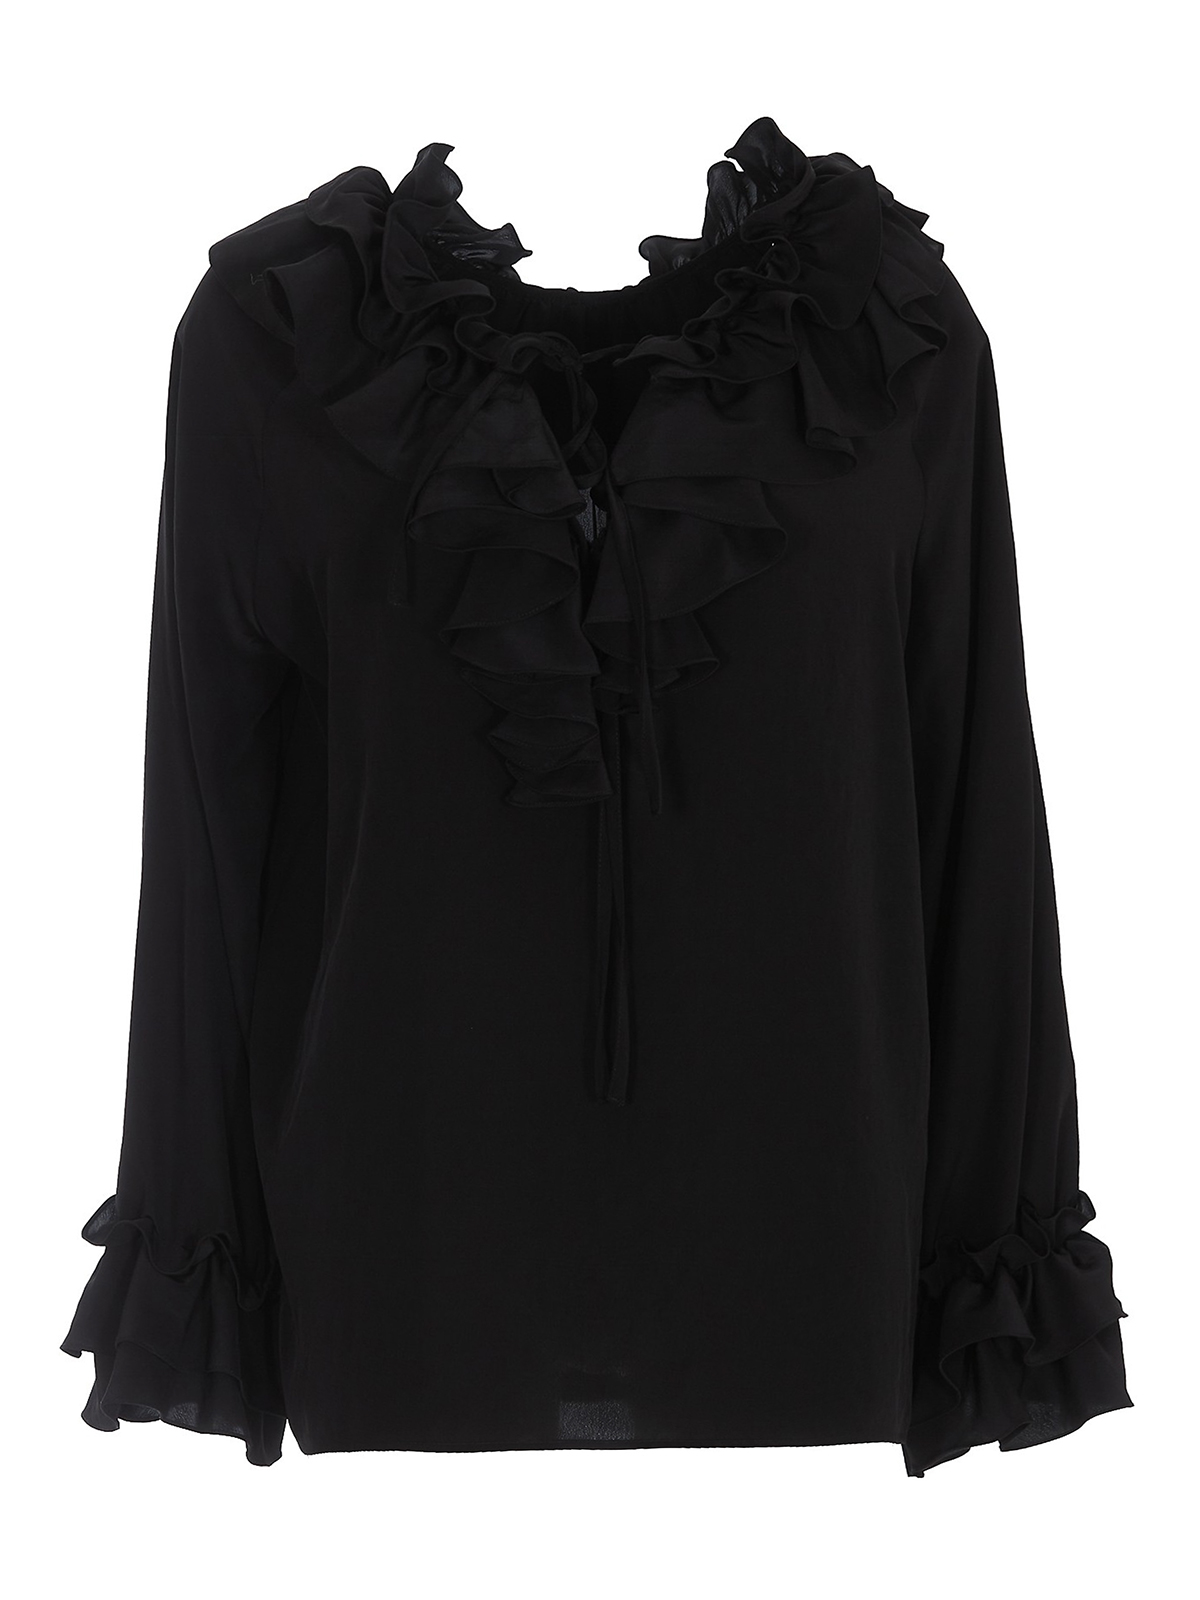 P.a.r.o.s.h. RUFFLE DETAILED BLOUSE